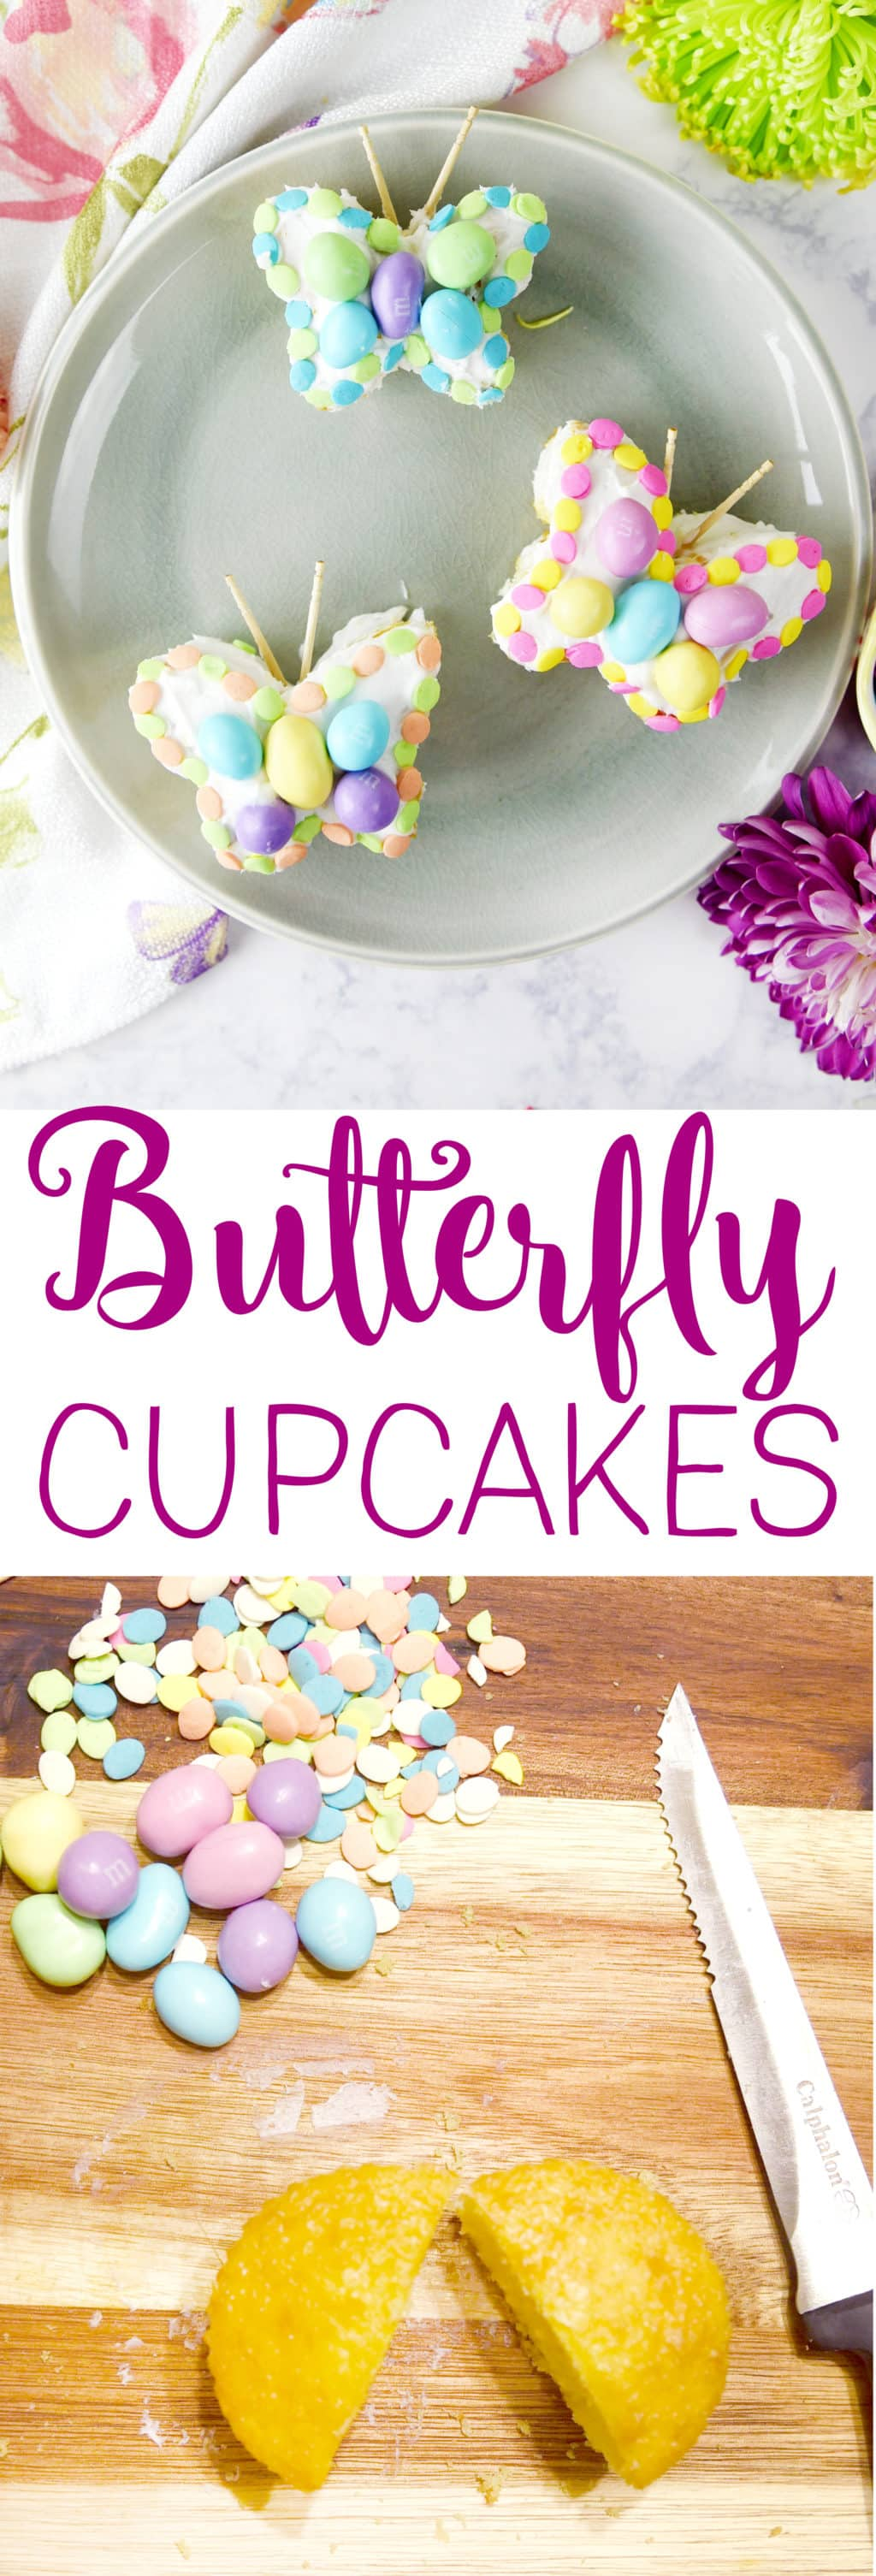 Butterfly Cupcakes made from a regular Cupcake!! So pretty and cute for spring and Easter!!!